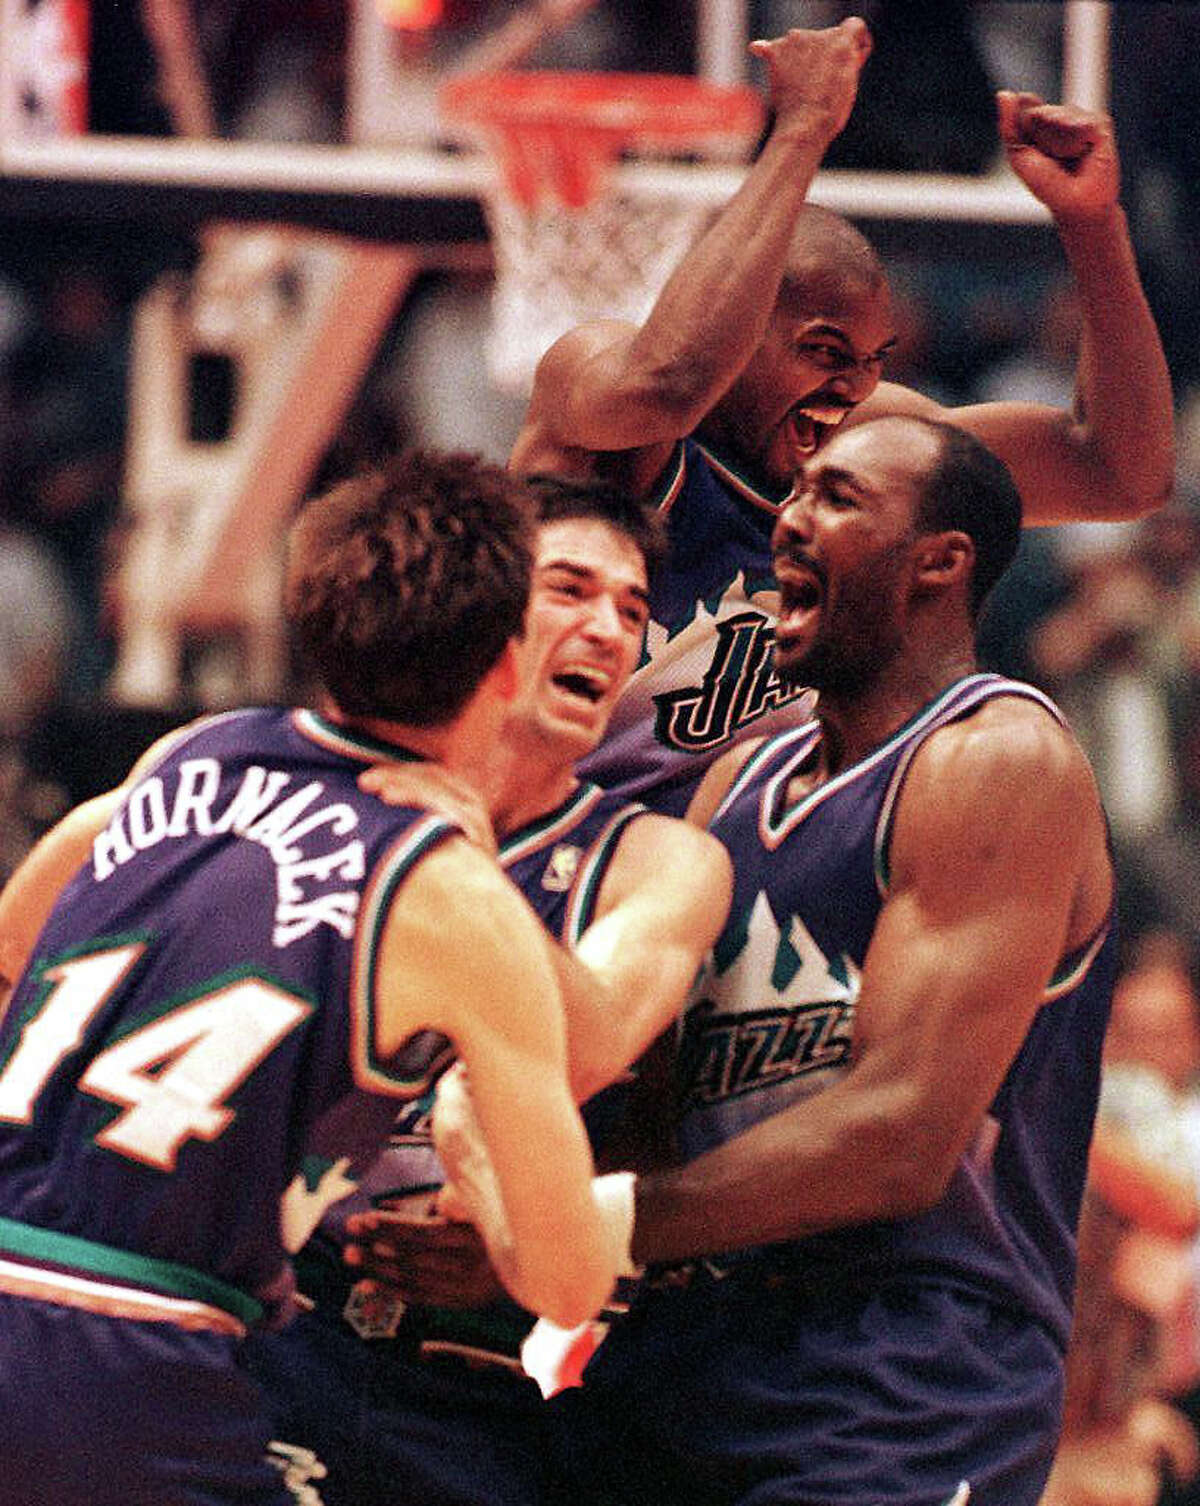 8. Utah Jazz They hail from sleepy Salt Lake City, but have done plenty to get under Rockets' fans skin over the years. The Rockets knocked out the Jazz en route to winning NBA championships in 1994 and 1995, with a memorable Game 5 victory in Salt Lake City during their repeat run. Utah got payback in 1997 on the sneaky dirty John Stockton's series-winning 3-pointer in Game 6 of the Western Conference Final at The Summit (with a big assist thanks to Karl Malone's moving screen on Charles Barkley). The Jazz also bounced the Rockets from the 1998, 2007 and 2008 playoffs. Lastly, how can anyone take the name